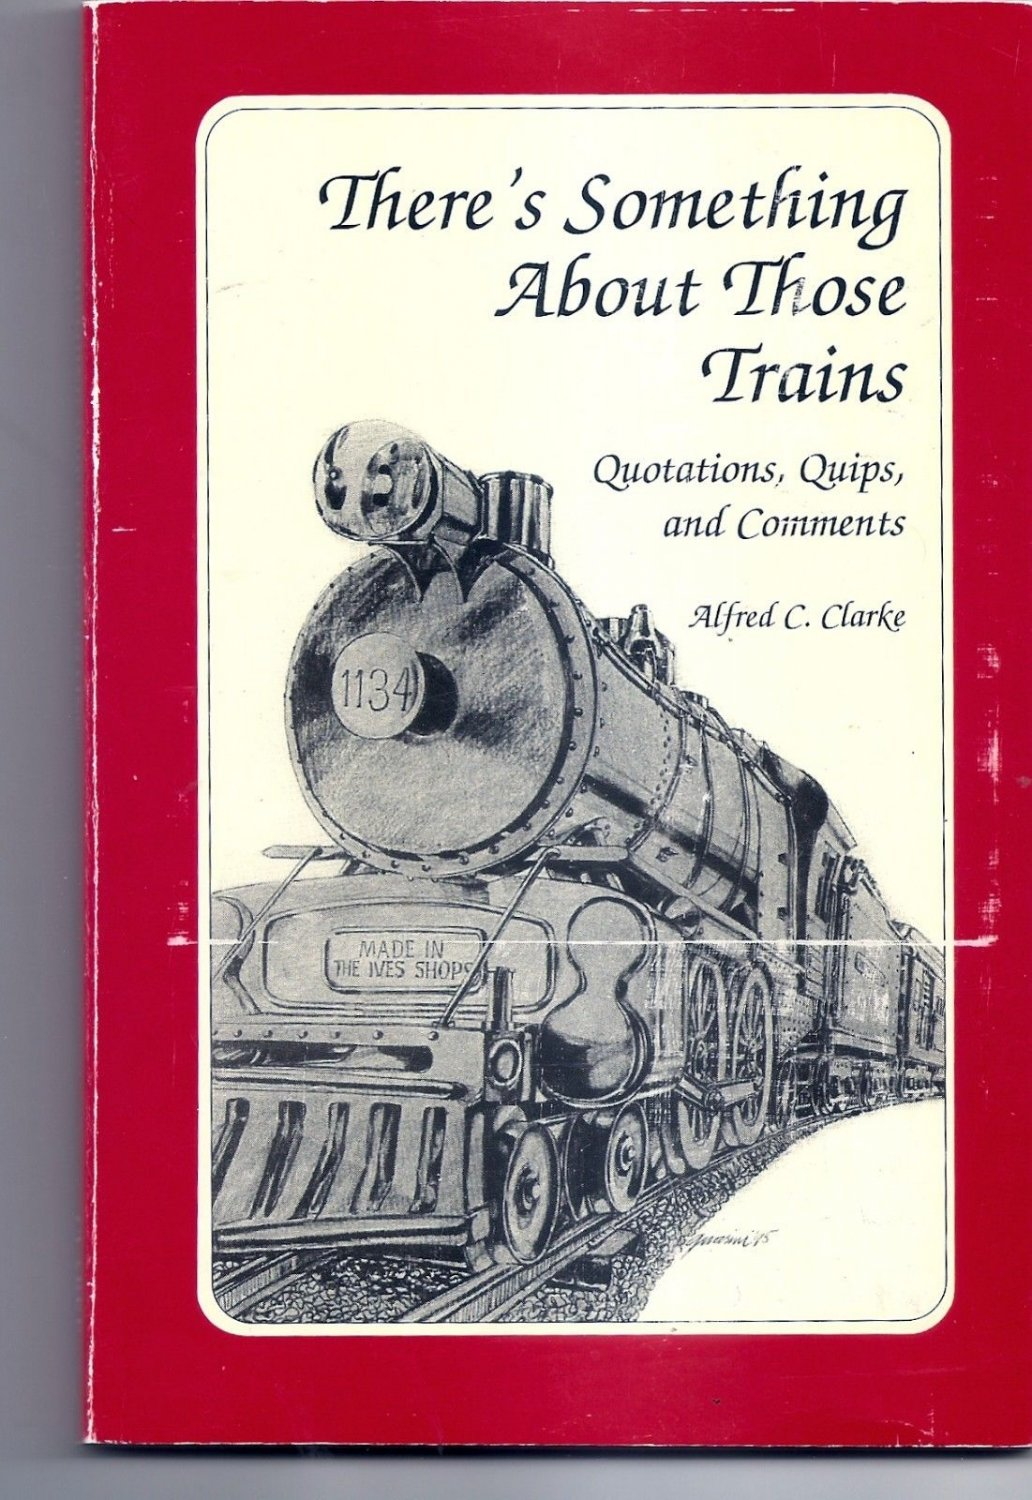 THERE'S SOMETHING ABOUT THOSE TRAINS - Quotes, Quips Comments by Alfred Clarke